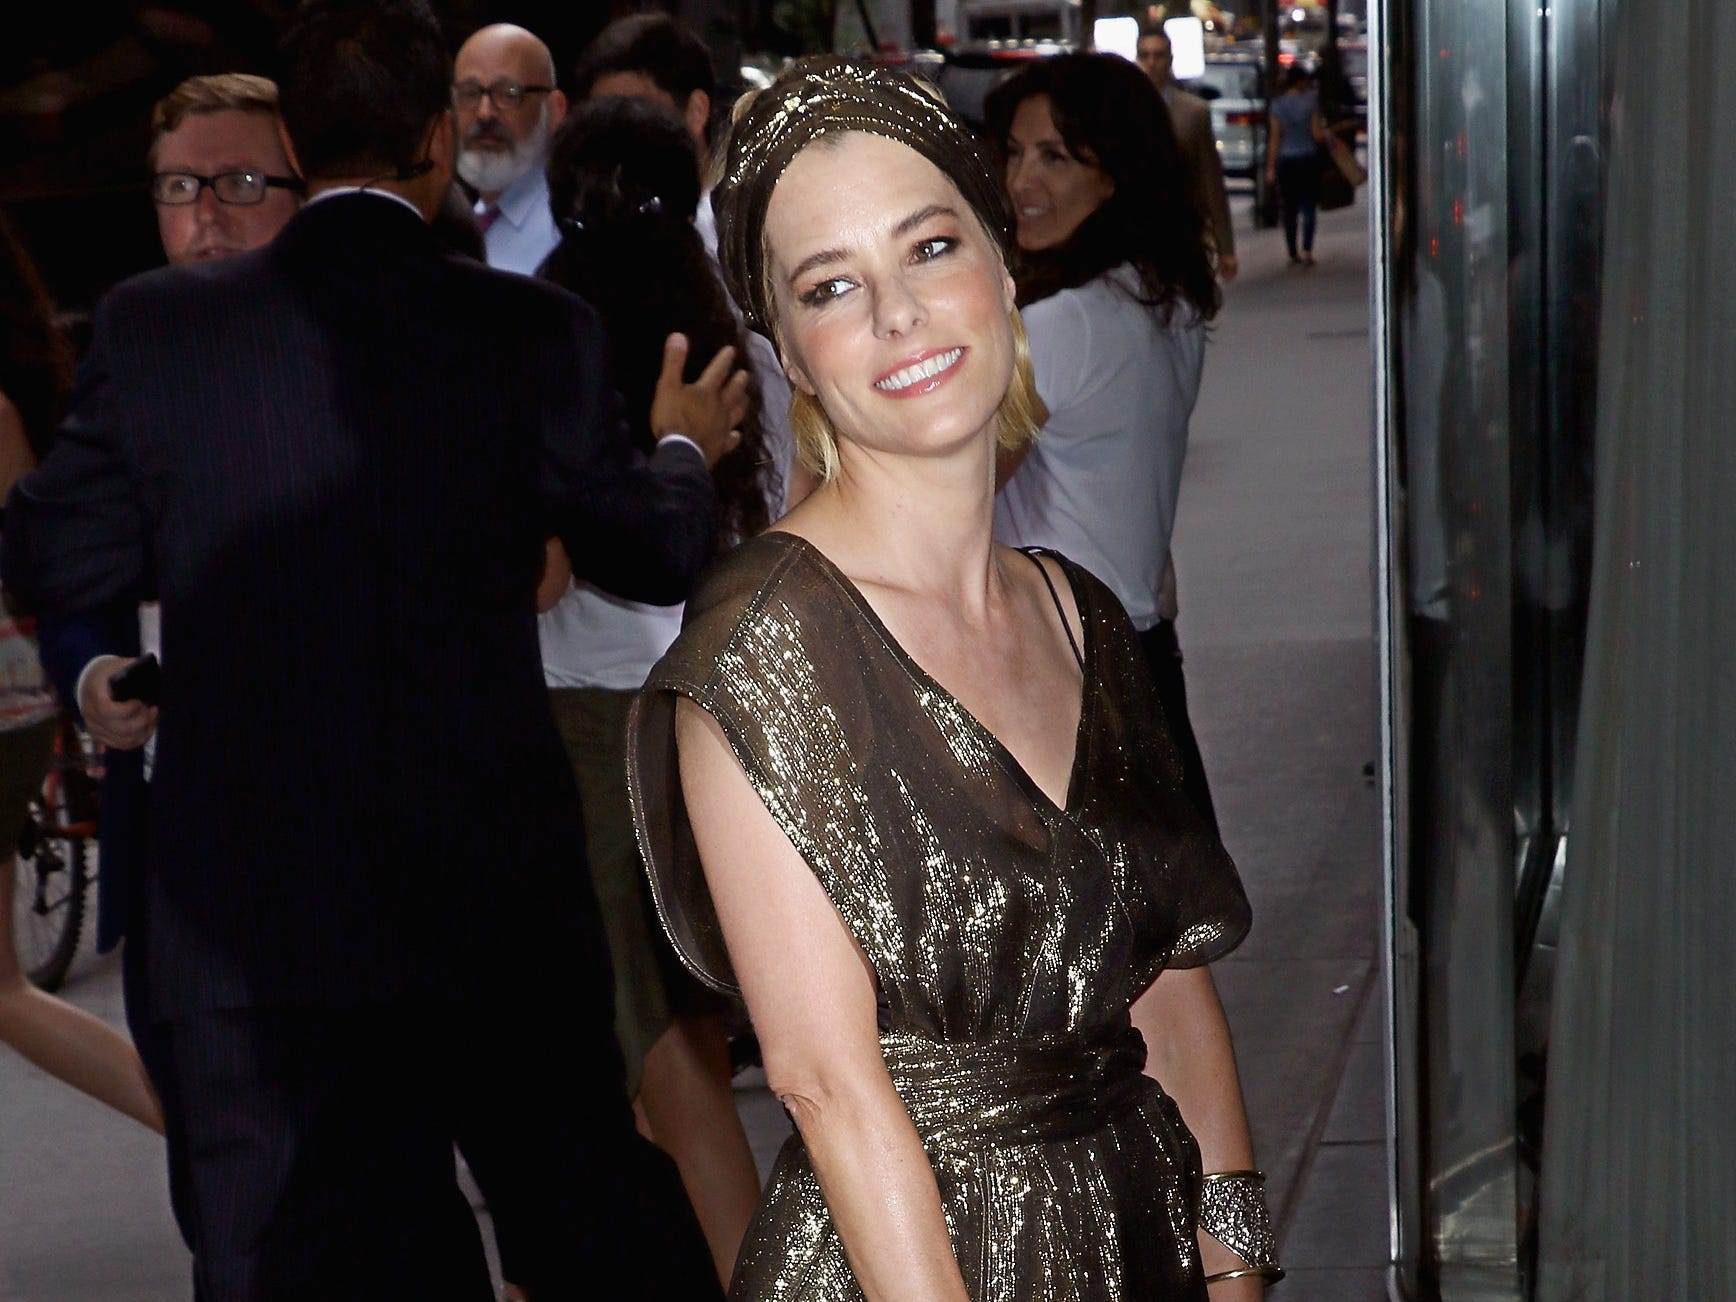 "NEW YORK, NY - JULY 15:  Actress Parker Posey attends The Cinema Society with FIJI Water & Metropolitan Capital Bank host a screening of Sony Pictures Classics' ""Irrational Man"" at Museum of Modern Art on July 15, 2015 in New York City.  (Photo by Jim Spellman/WireImage) ORG XMIT: 565136087 ORIG FILE ID: 480886586"